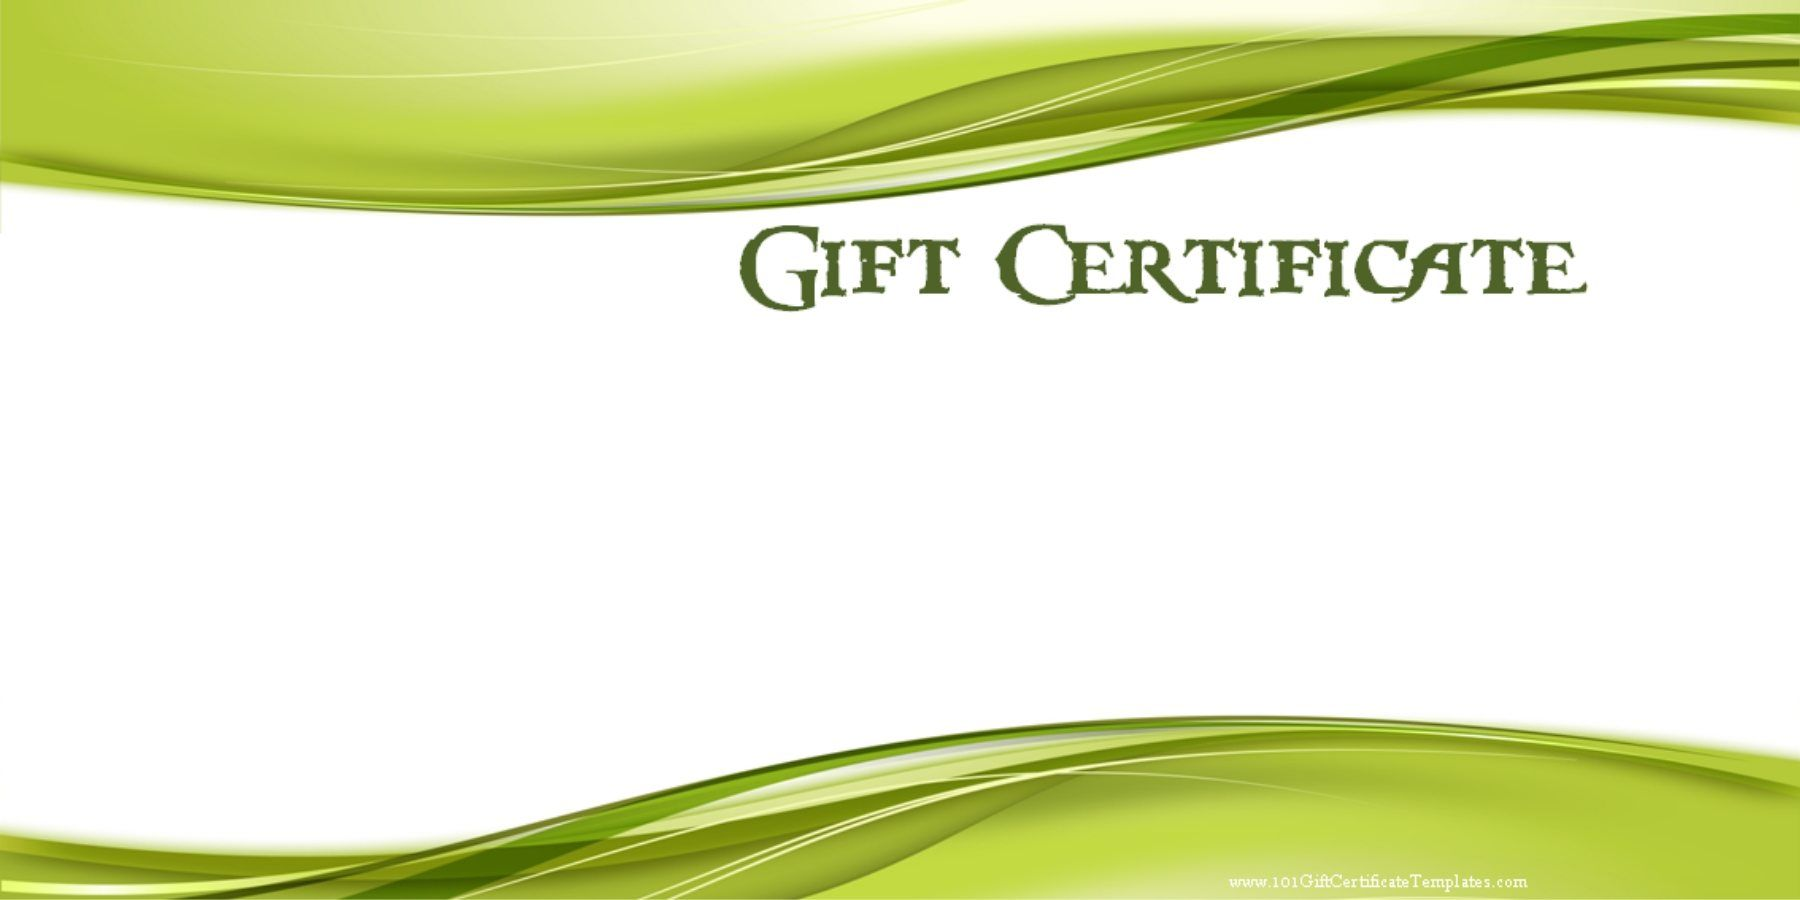 Gift Certificates Template Printable Certificate Templates  Home